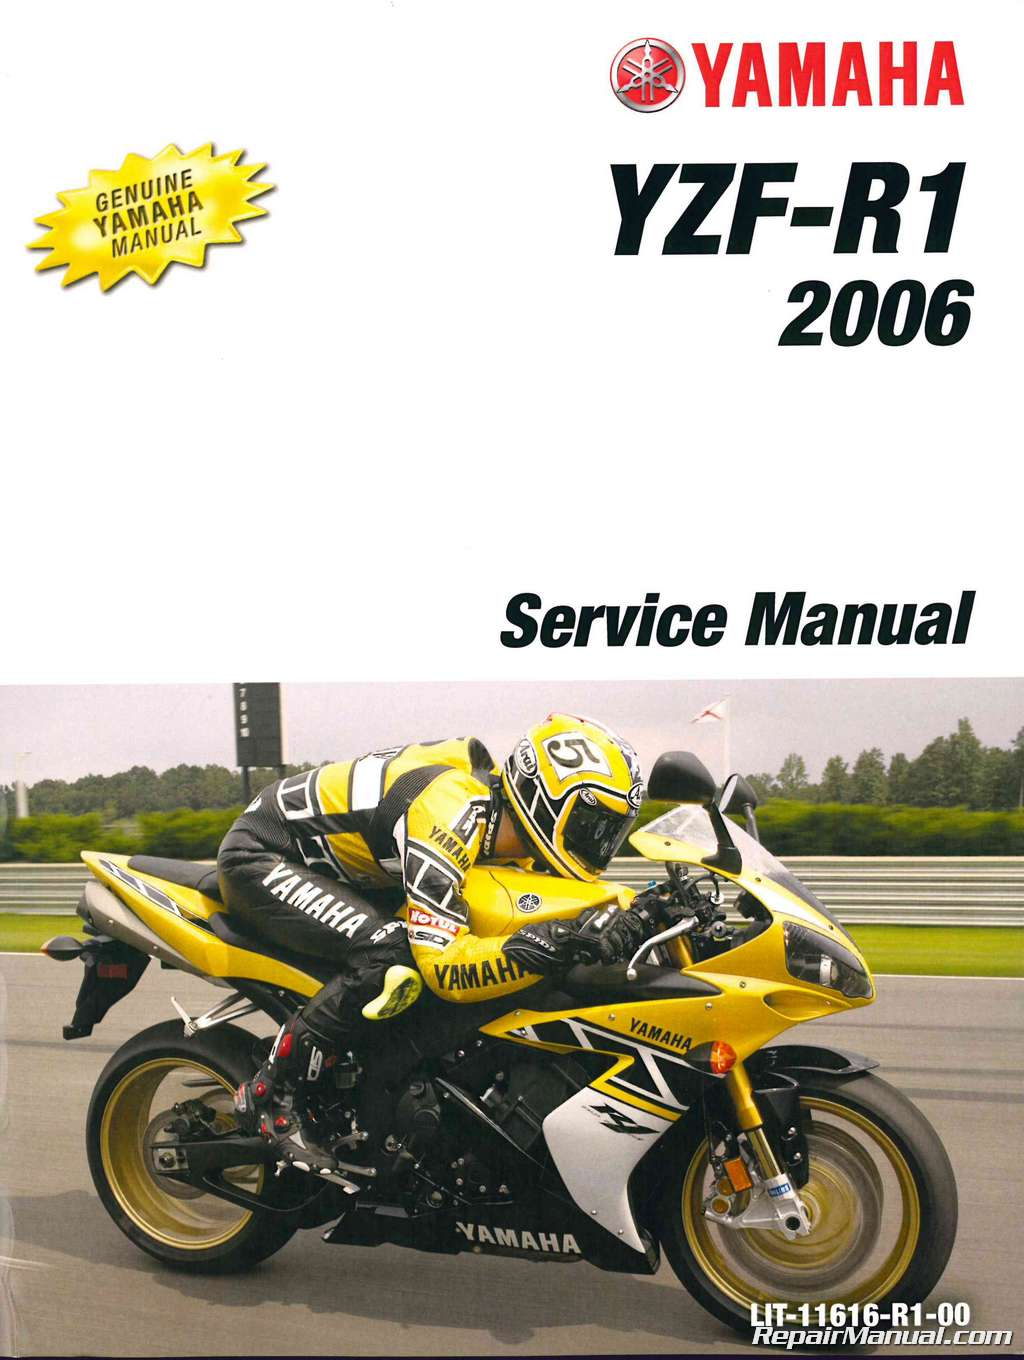 2006 Yamaha Yzf R1 Motorcycle Service Manual 2009 Wiring Diagram Front